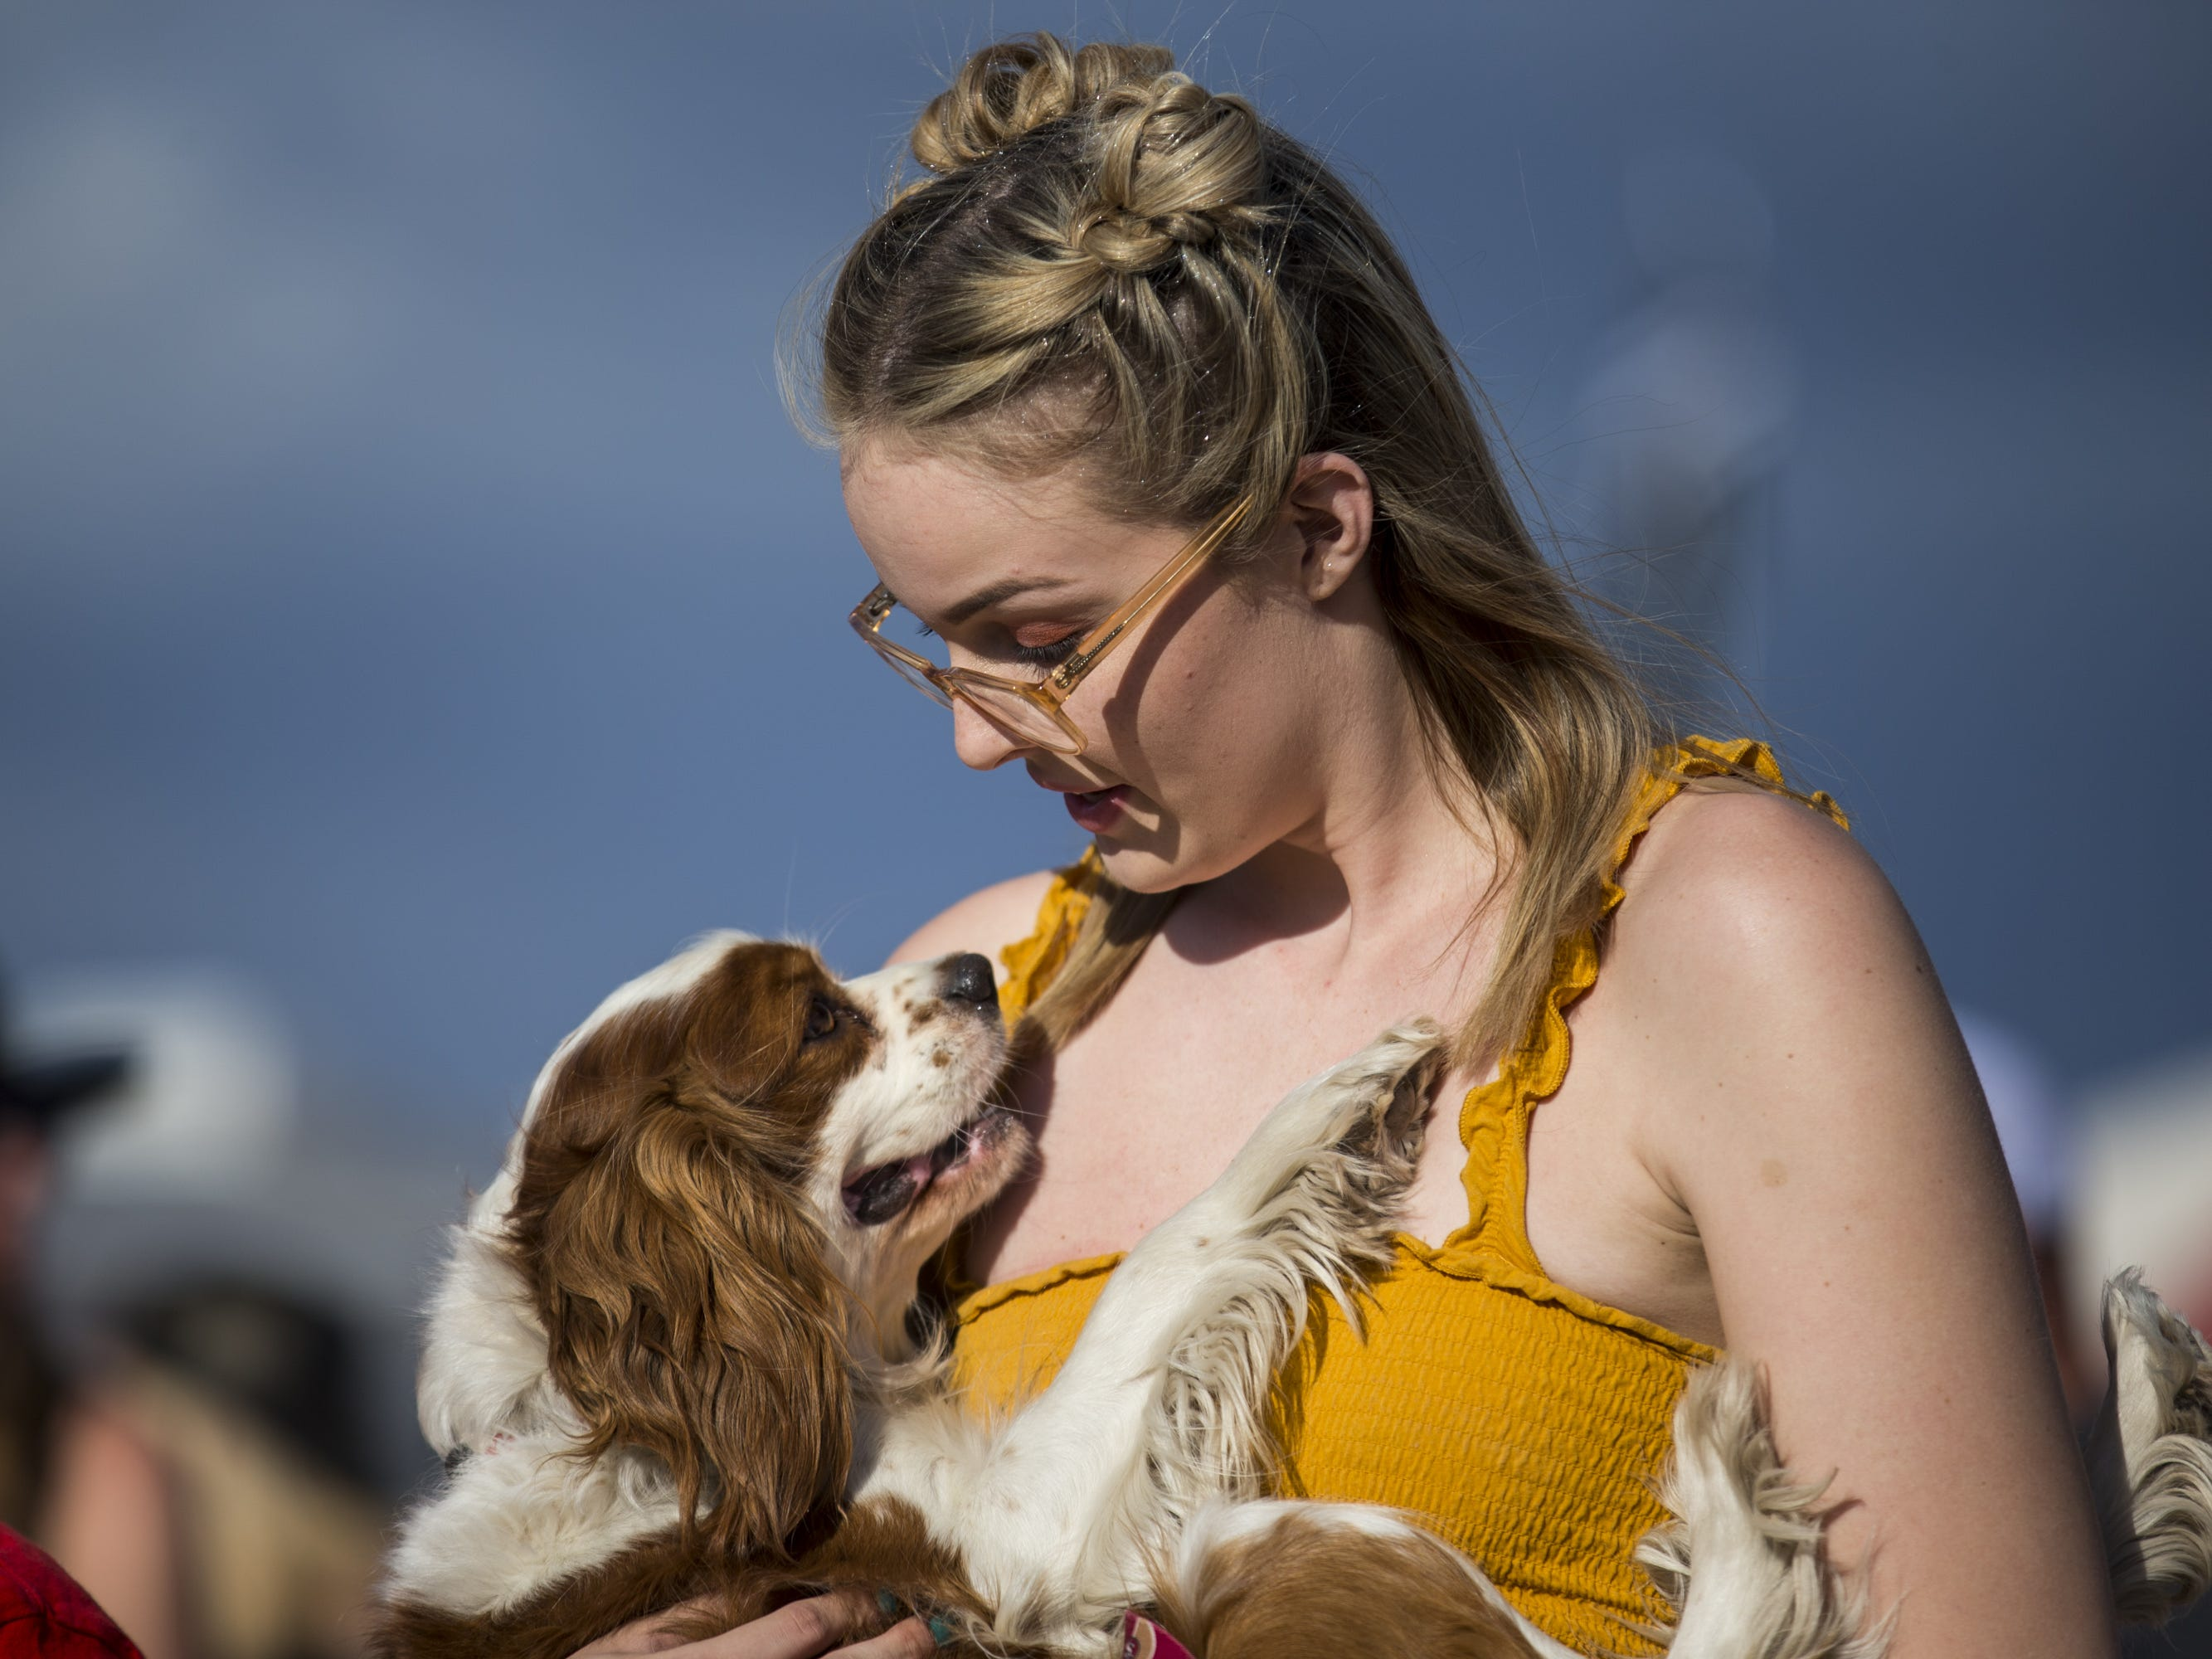 Gabby Raes carries her dog, Bentley, on Friday, April 12, 2019, during Day 2 of Country Thunder Arizona in Florence, Ariz.